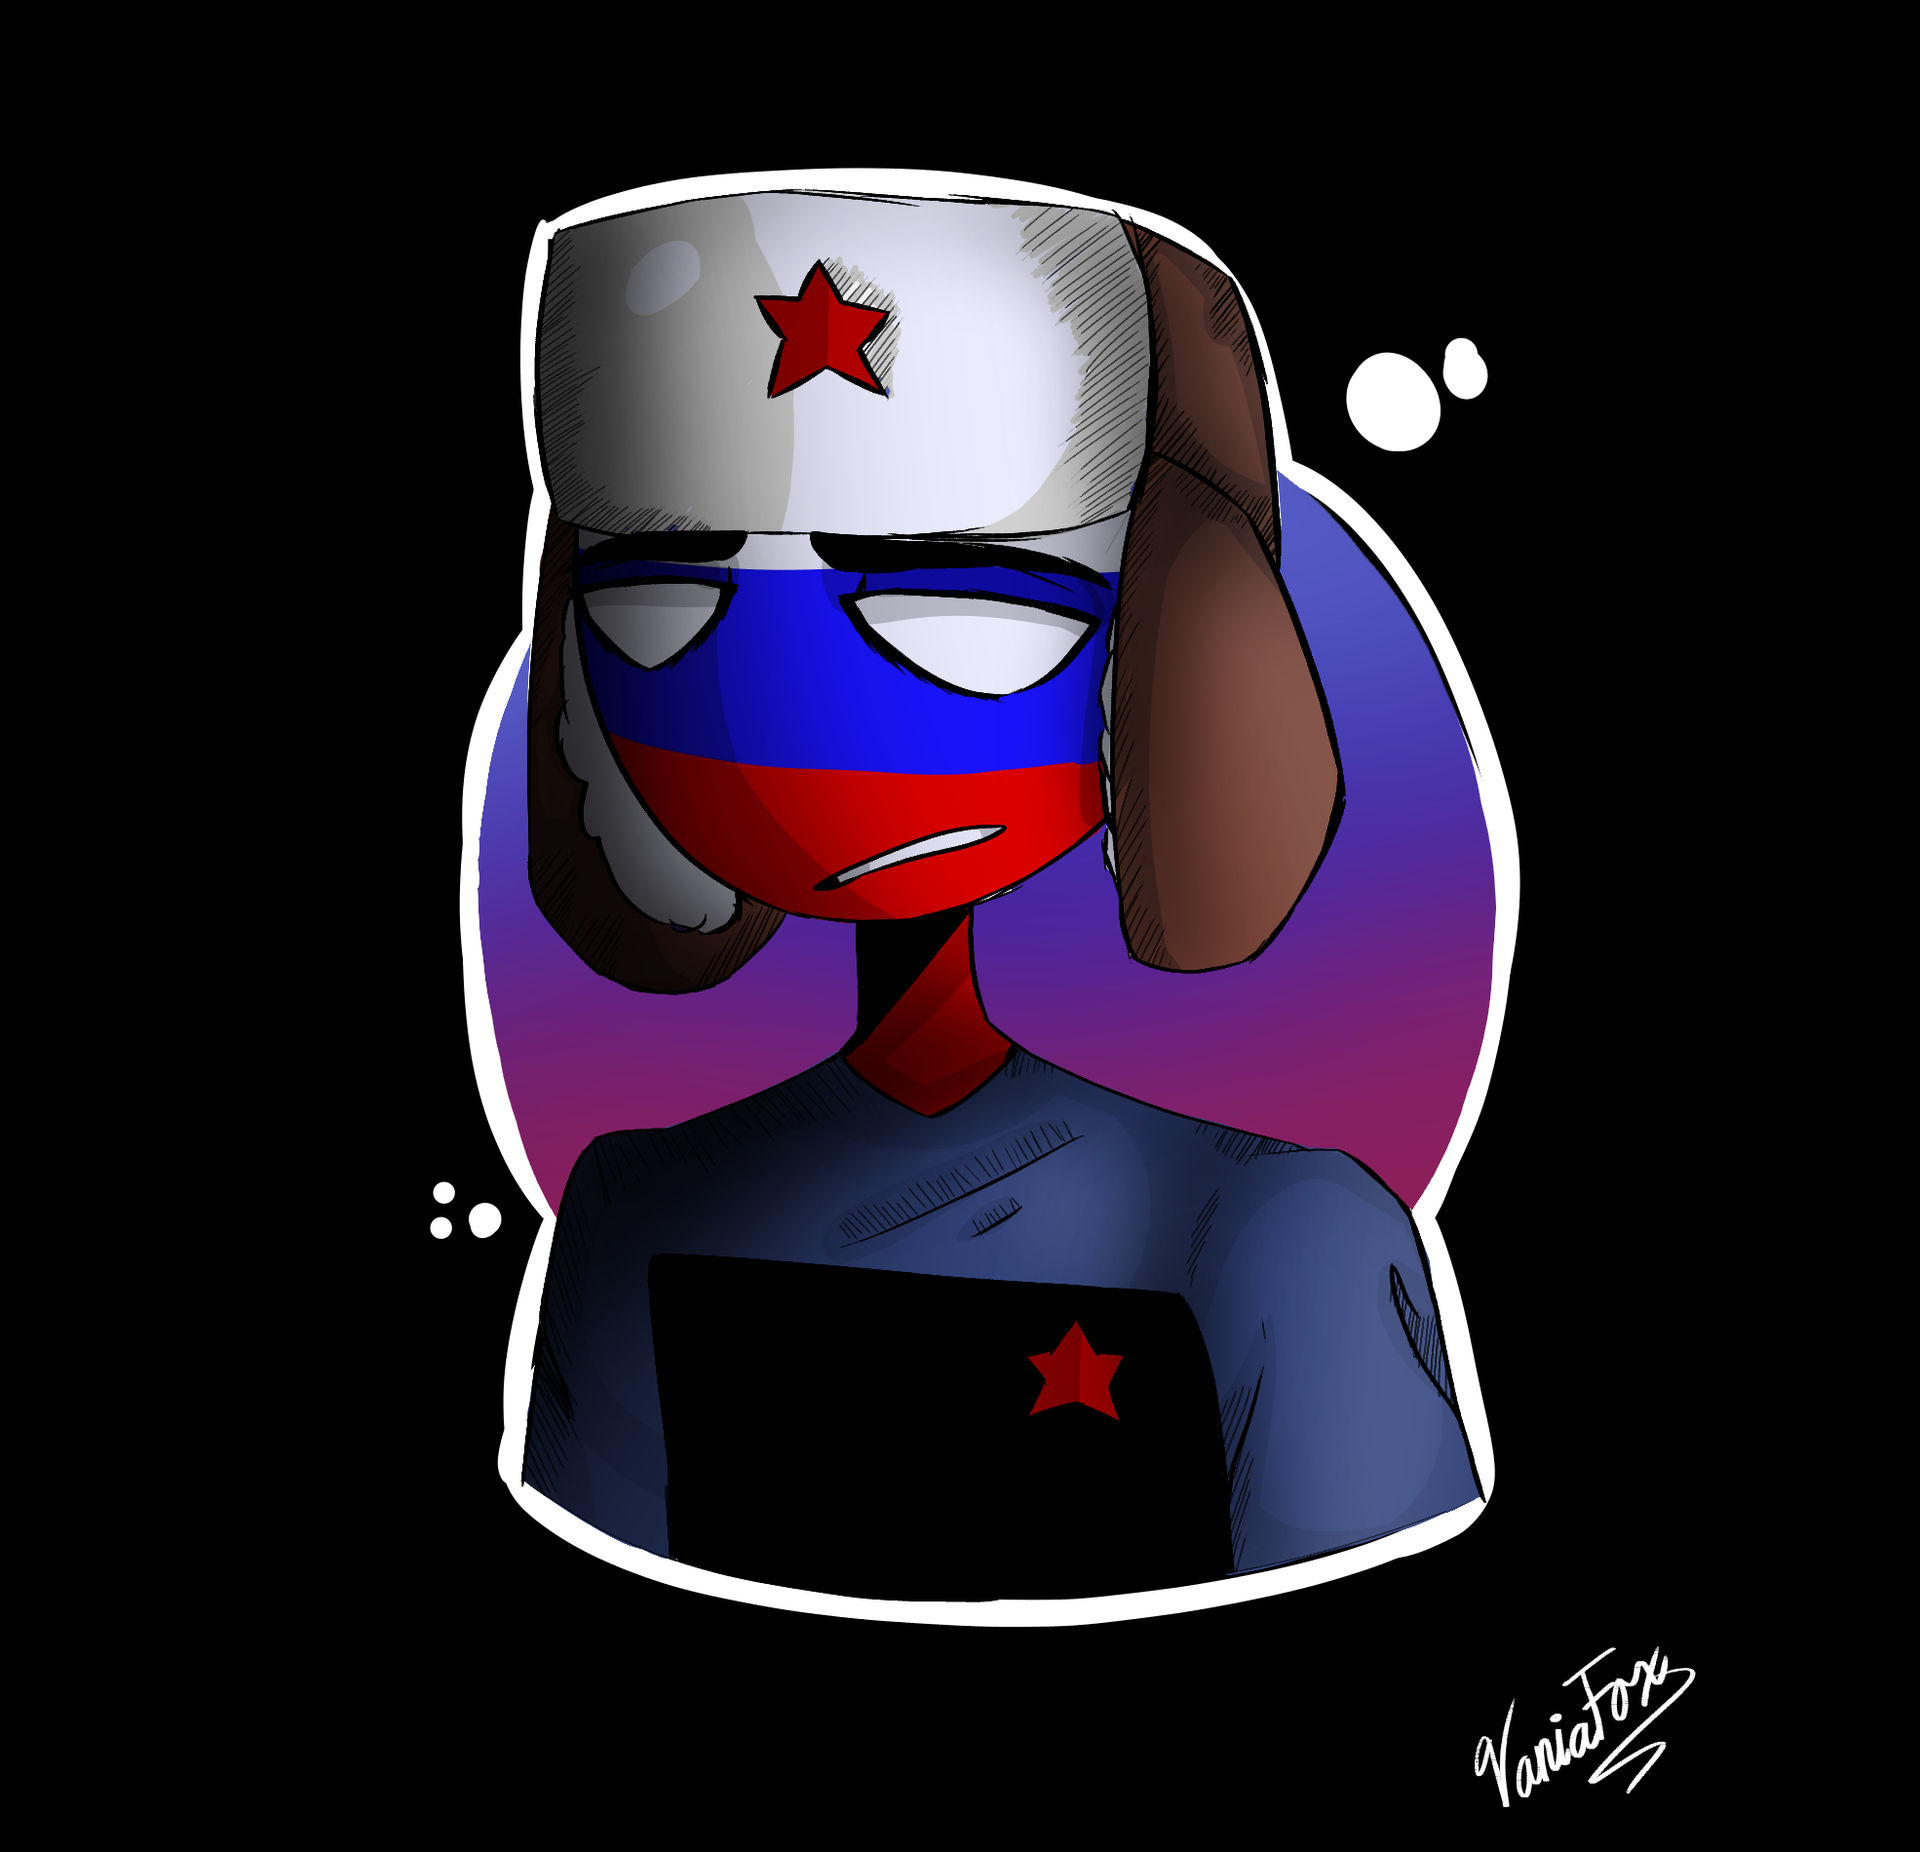 (Countryhumans) Russia by VaniaFox on DeviantArt